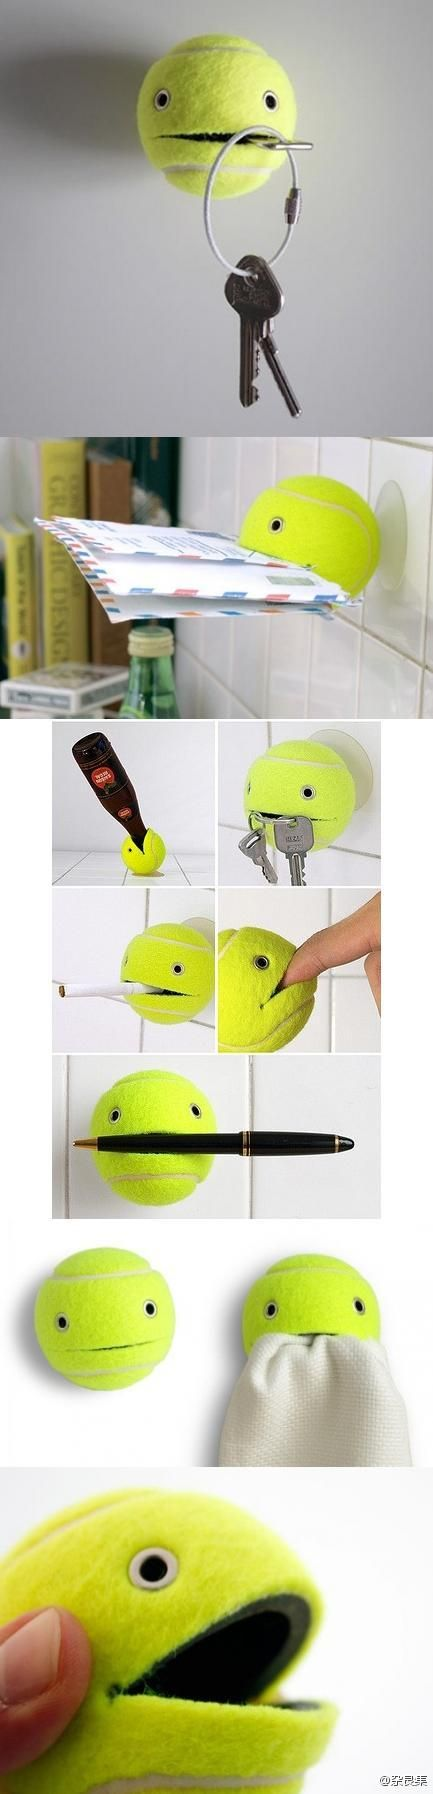 tennis ball helper (DIY)